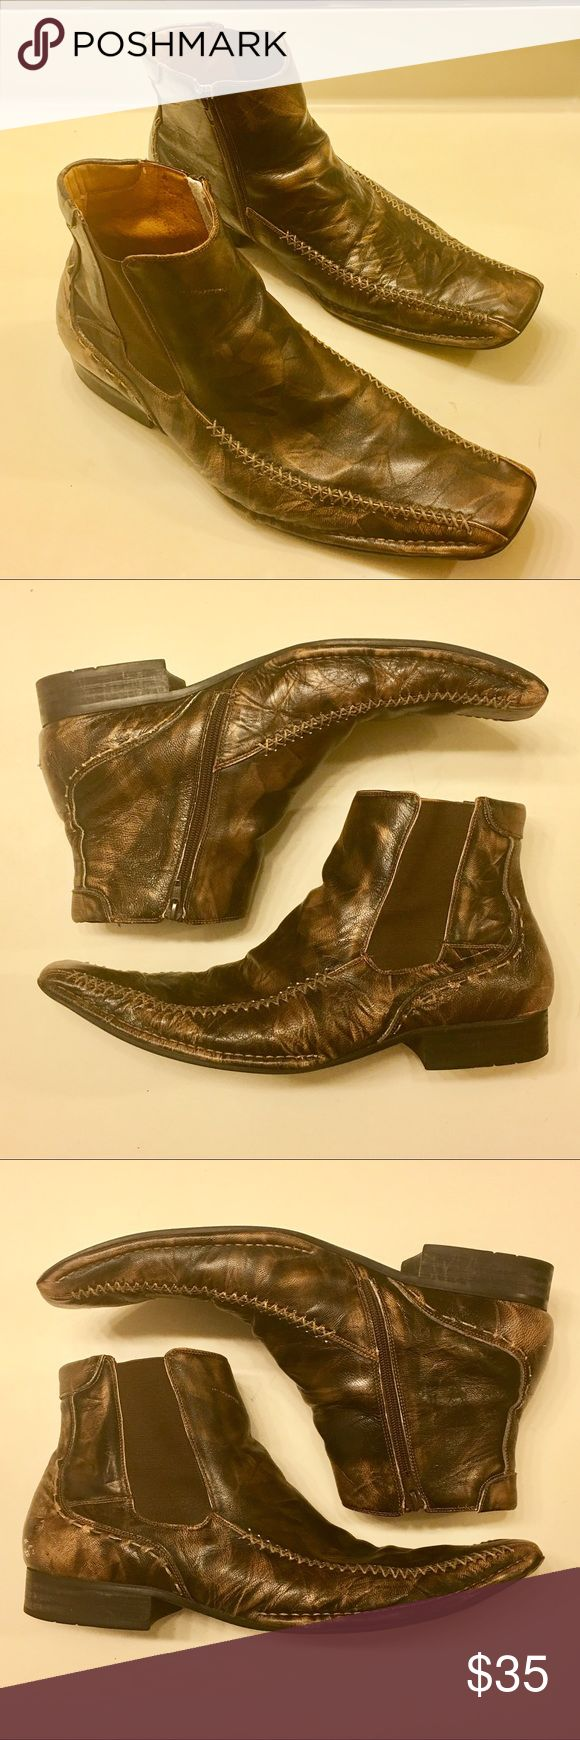 Men's 13 | STEVE MADDEN Brown Leather Ankle Boots Men's 13 | STEVE MADDEN Brown Leather Ankle Boots. Hot. To. Trot. 🔥🔥🔥 Gently Lived • EUC Steve Madden Shoes Boots